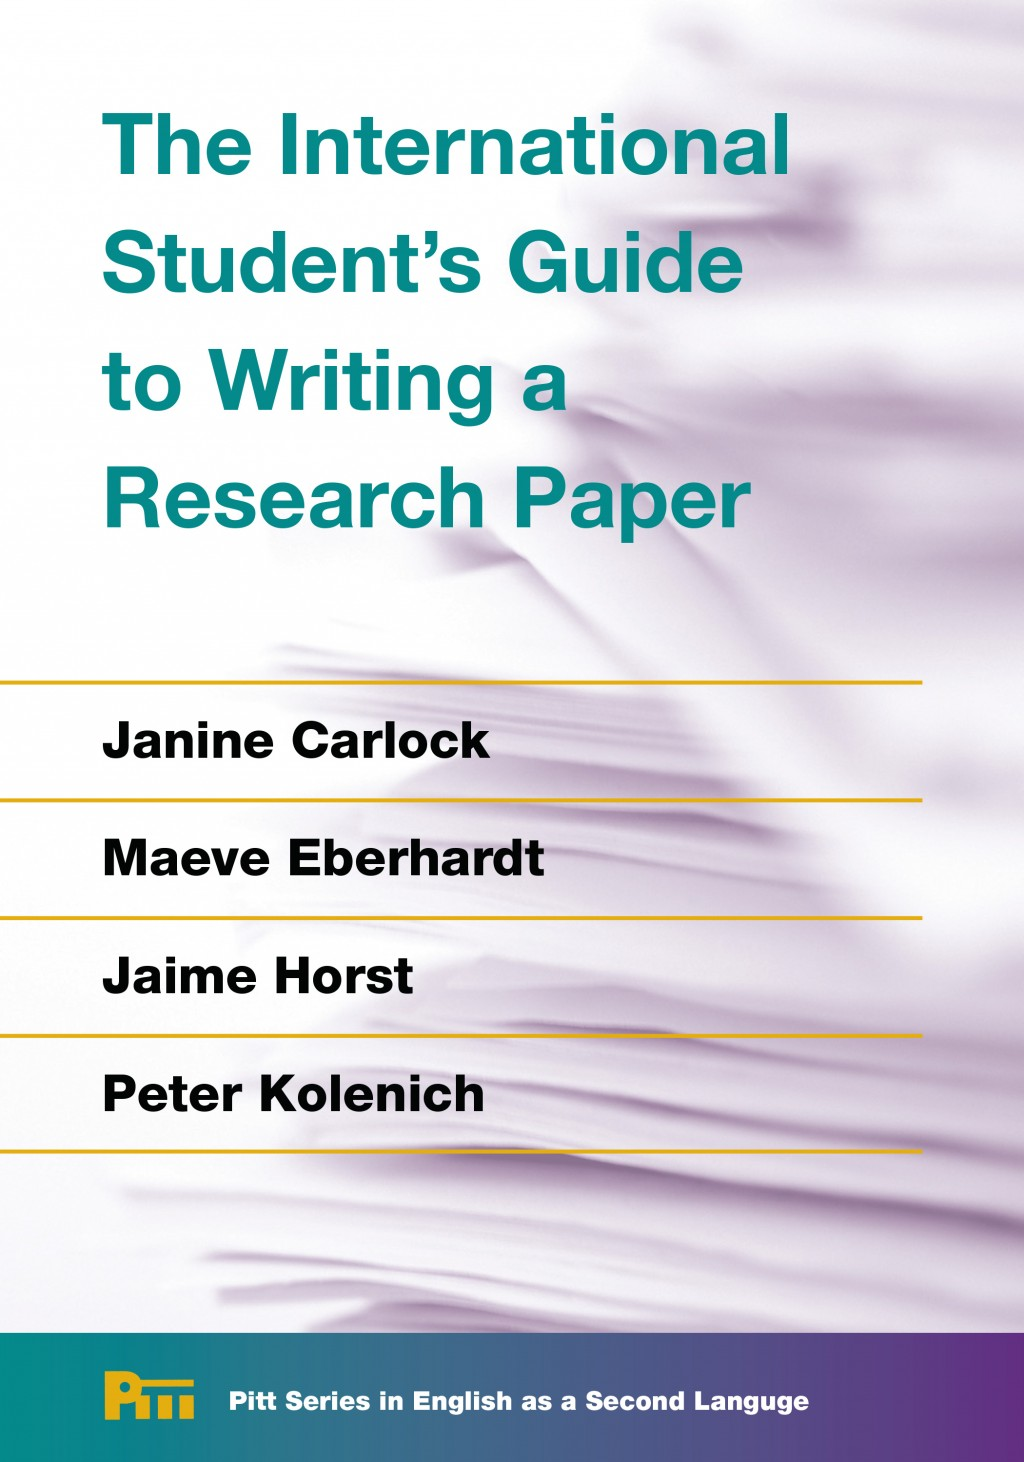 013 Writing The Research Paper Phenomenal How To Write Outline A Pdf Handbook 8th Edition Large